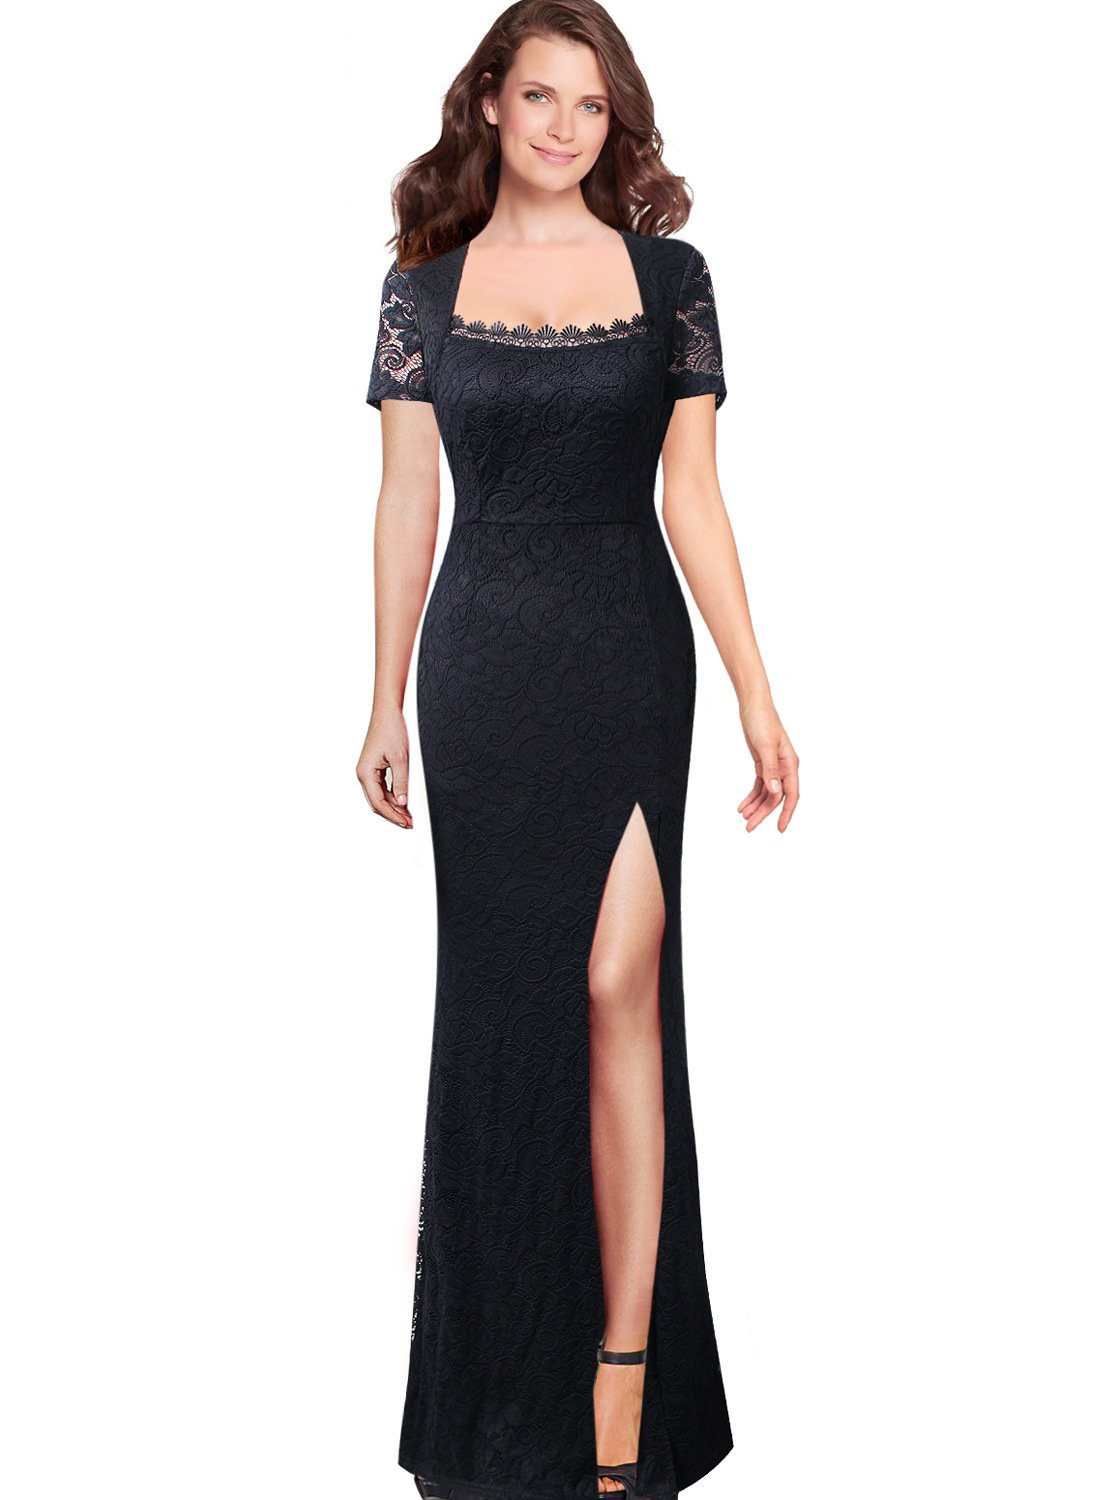 VfEmage Womens Square Neck Floral Lace Mermaid Formal Evening Maxi Dress 9461 BLK 12